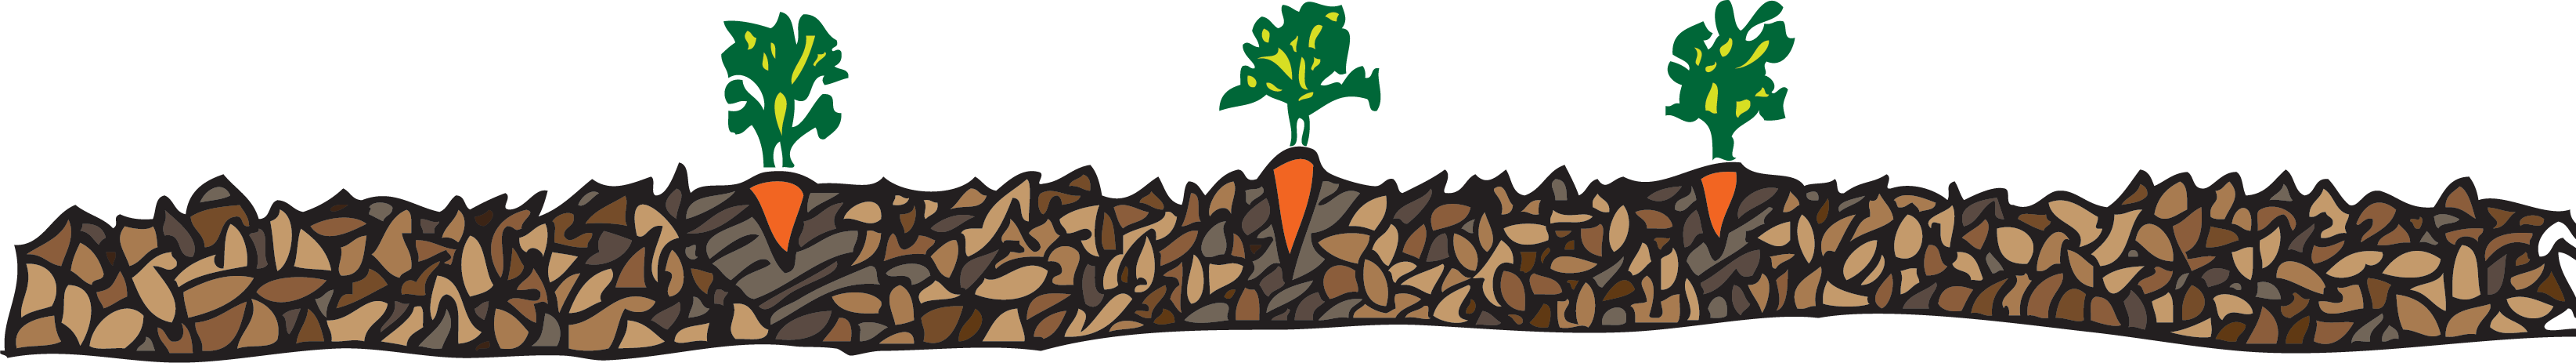 Green compost apple clipart vector transparent library Grow vegetables easily using leaf compost mulch vector transparent library